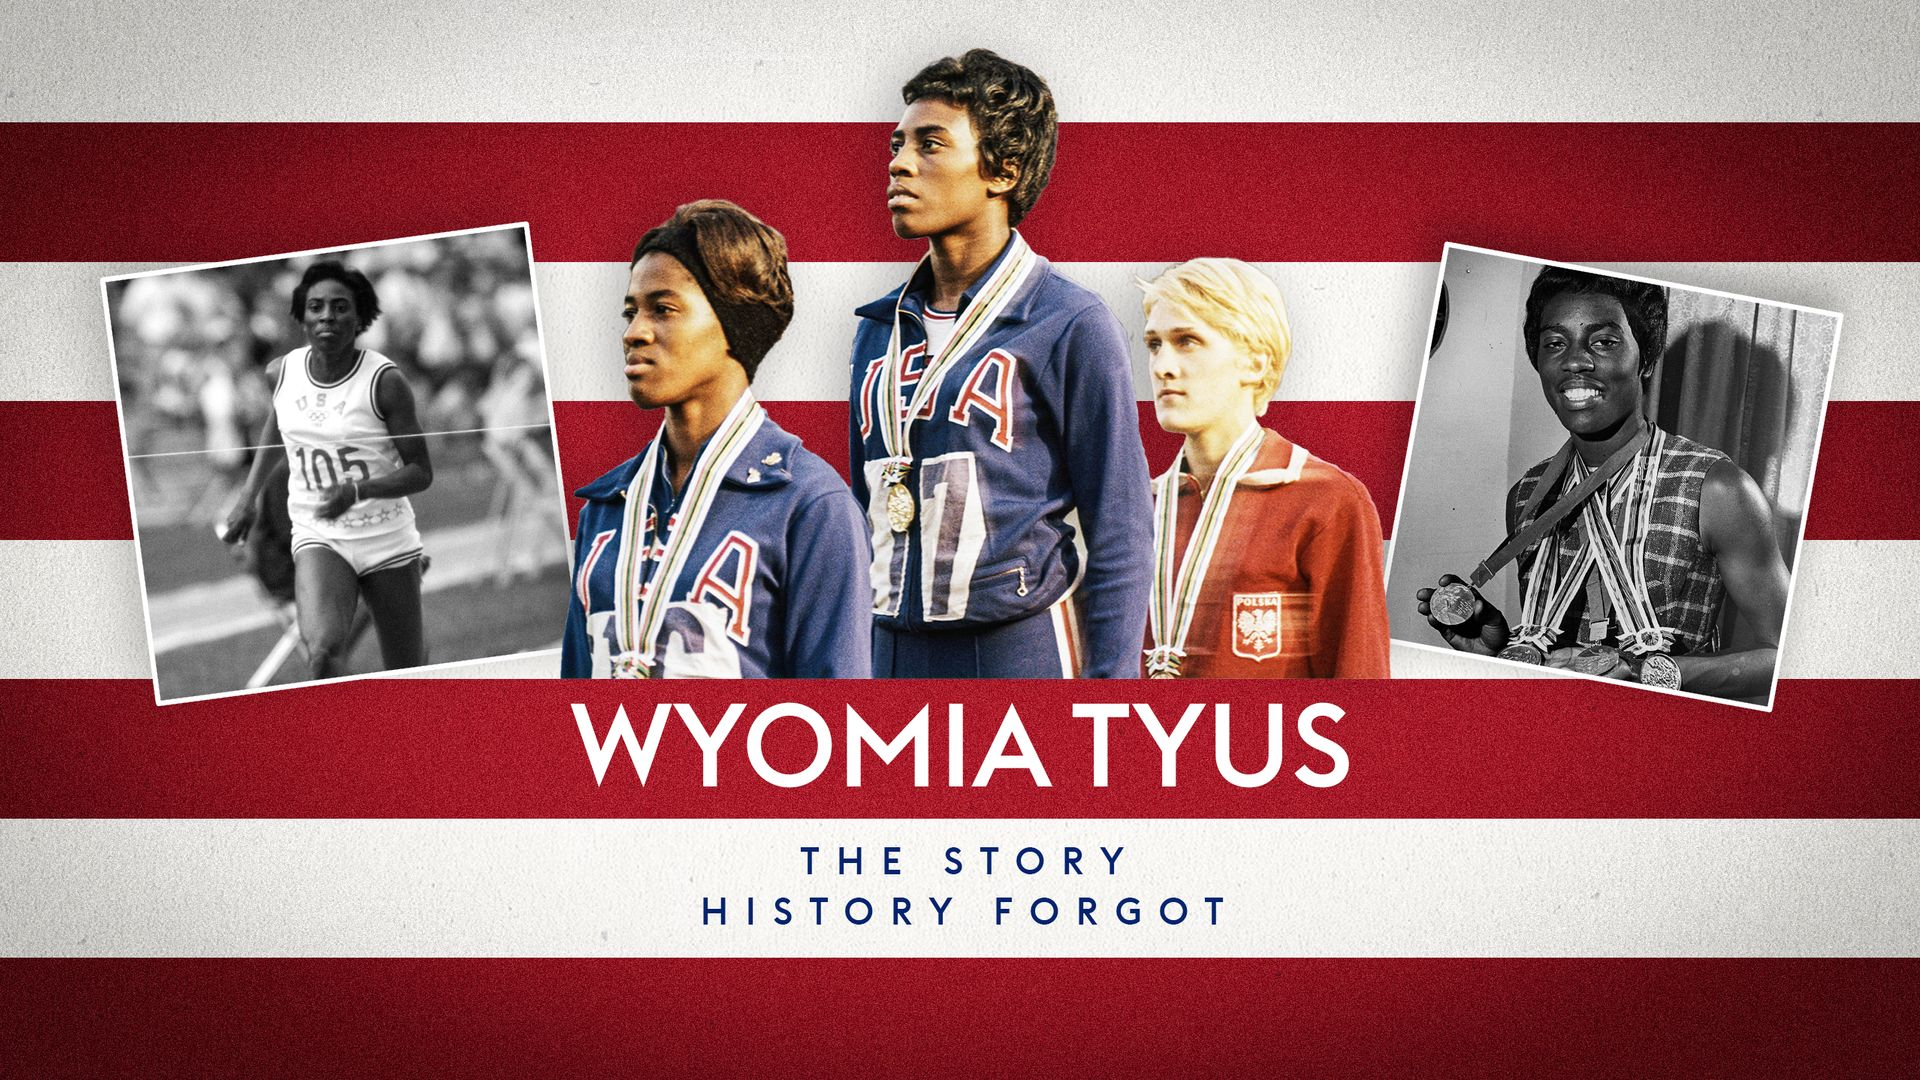 Wyomia Tyus: The first back-to-back Olympic 100m champion